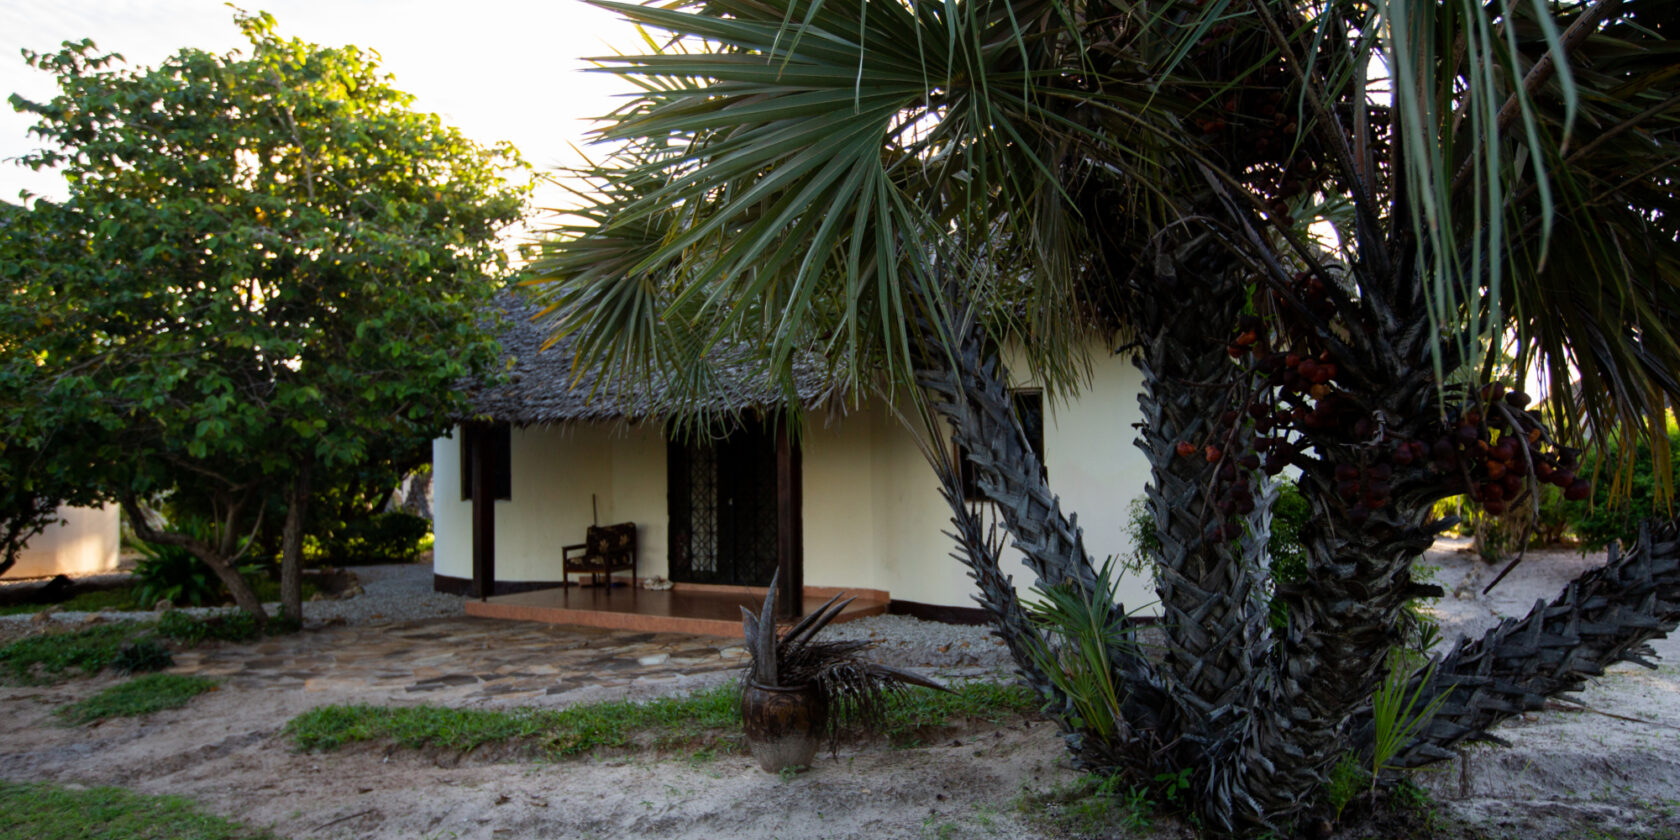 One of the bungalows at TICC, with palms and trees around